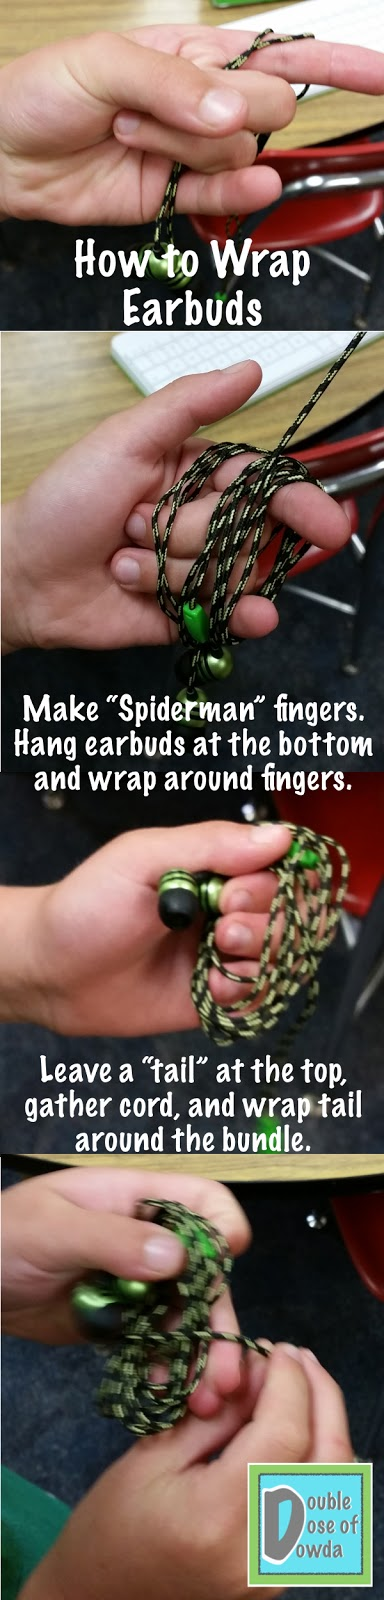 "Use ""Spiderman"" fingers to wrap earbuds and prevent tangles"